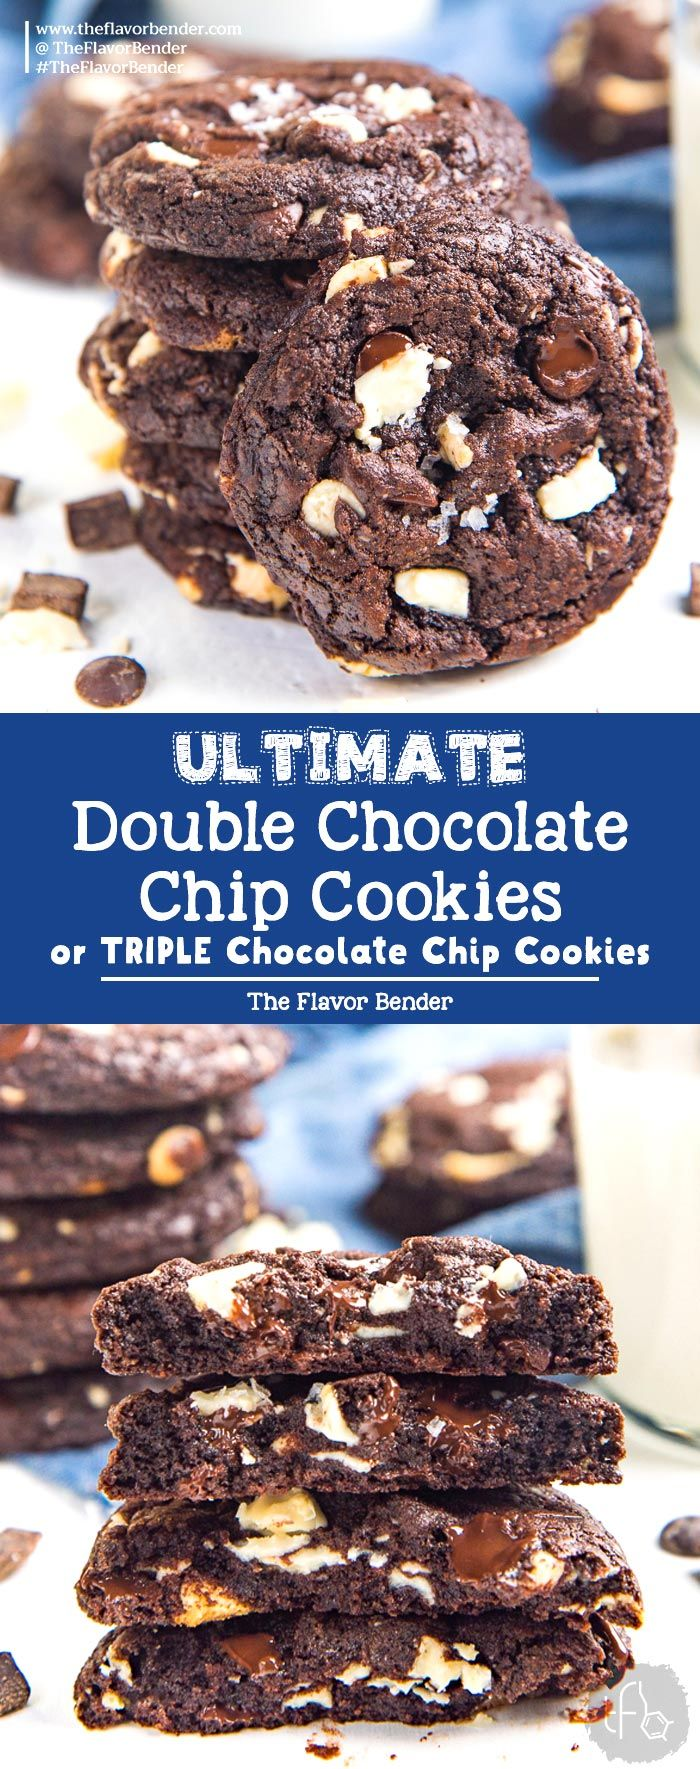 Ultimate Double Chocolate Chip Cookies - The Flavor Bender